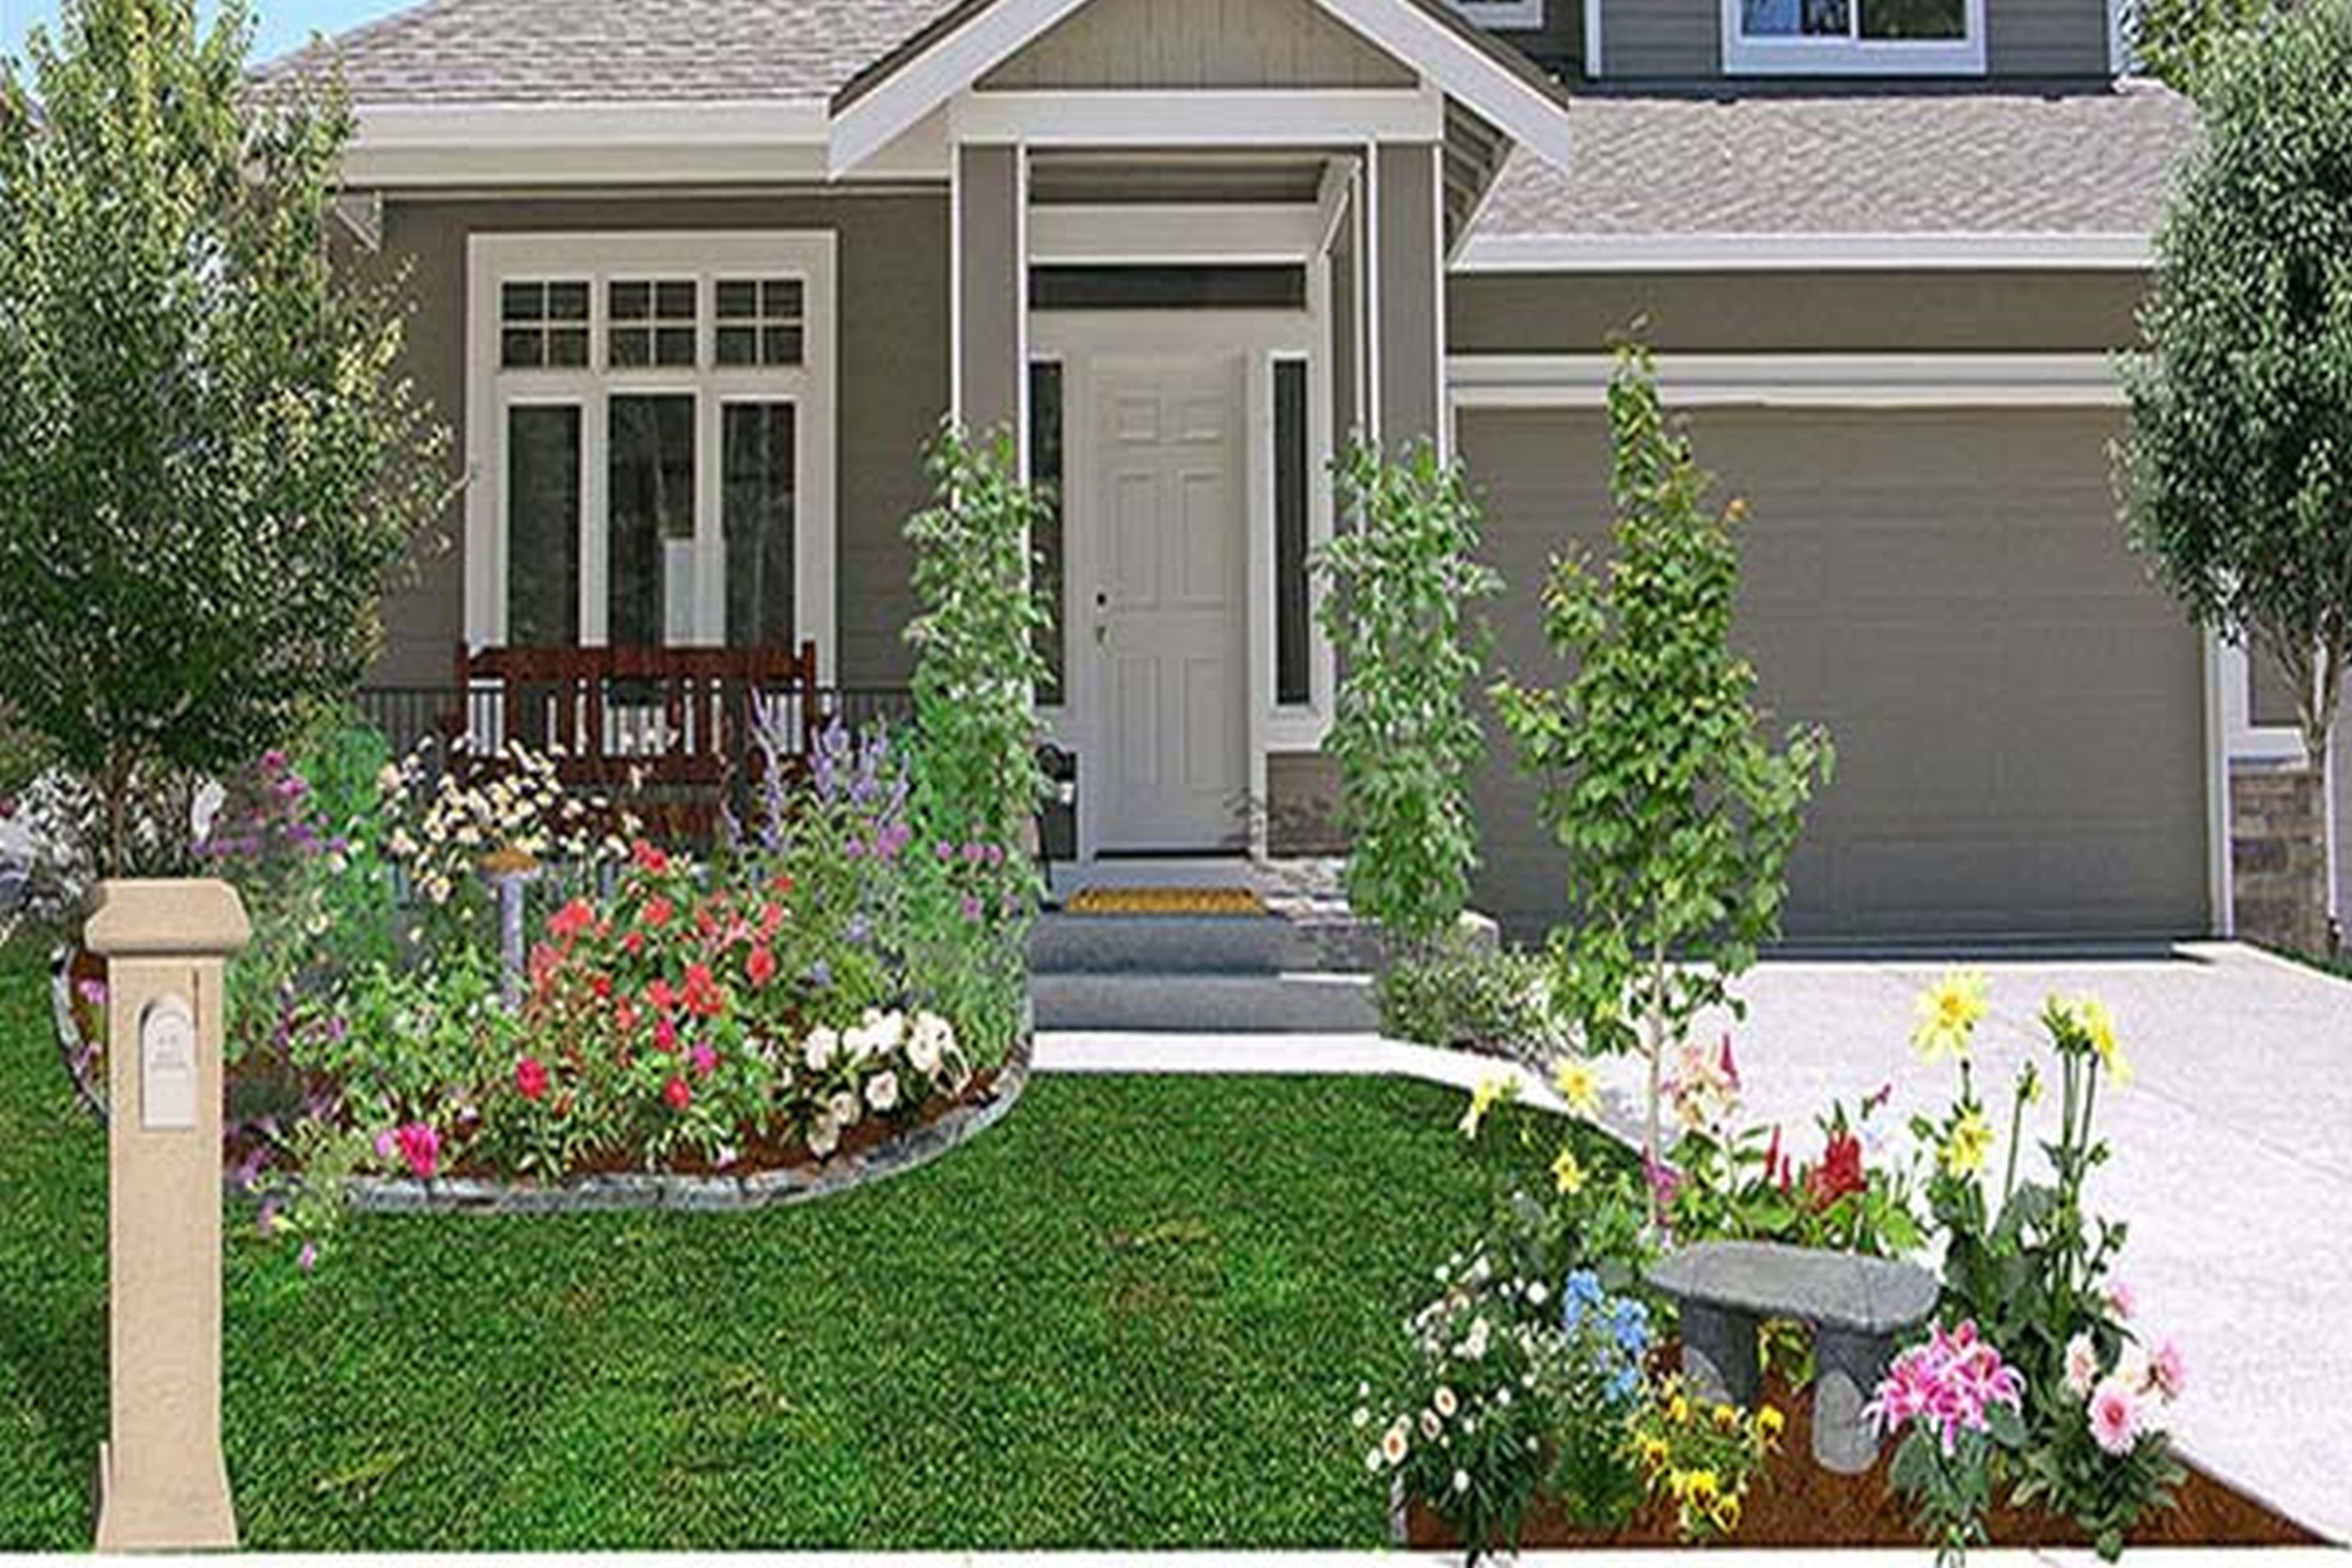 10 Spectacular Cheap Landscaping Ideas For Front Yard cheap landscaping ideas for front yard amys office greenvirals style 2021